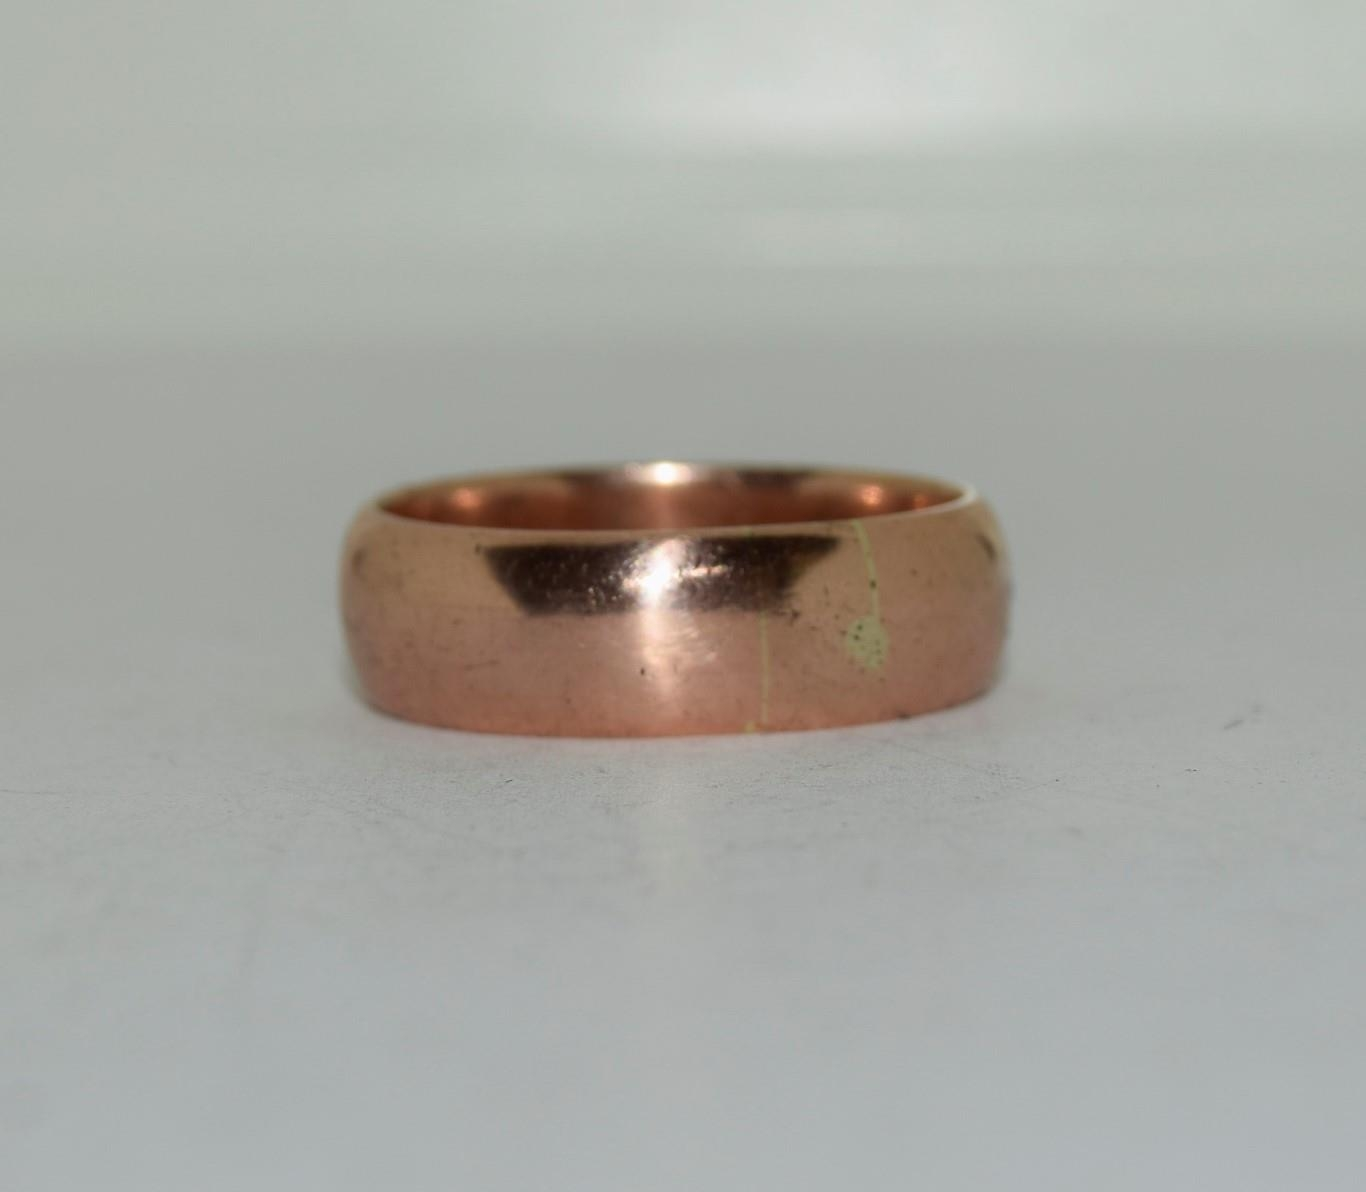 9ct gold mans wedding band size X 8.7gm - Image 5 of 6